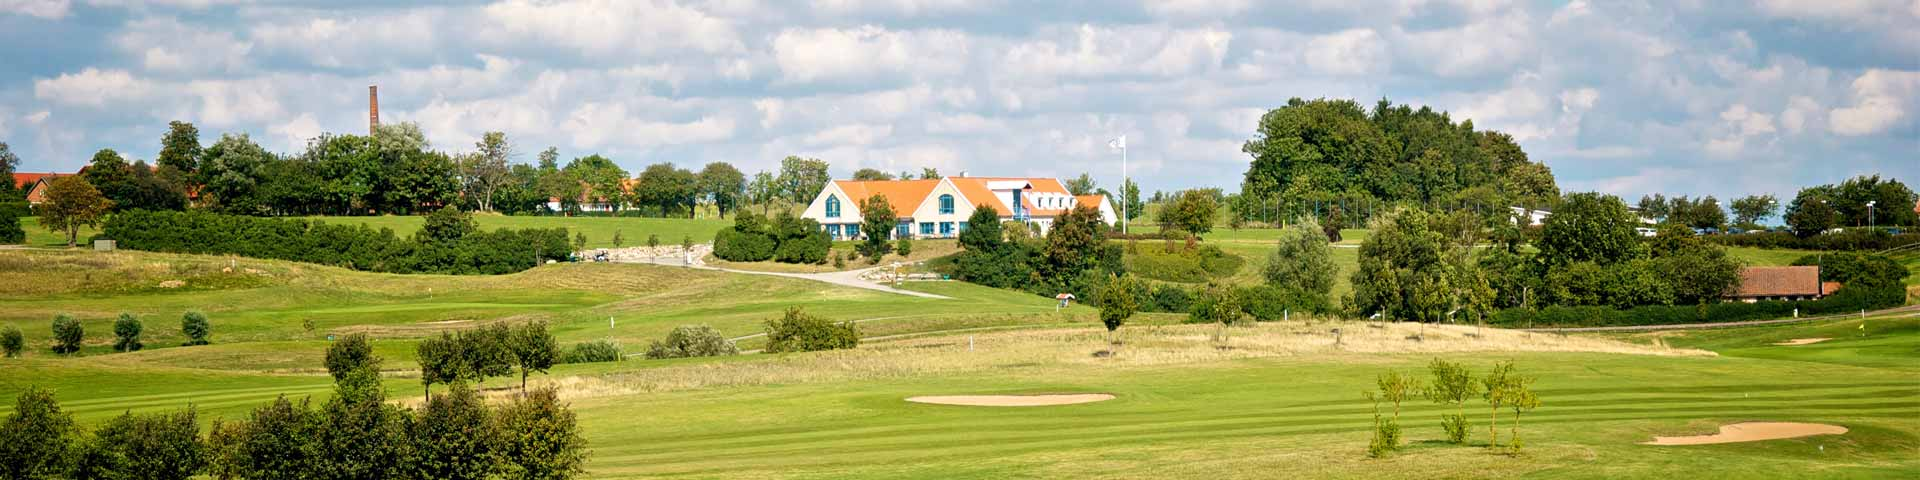 Overview of golf course named Tegelberga Golfklubb